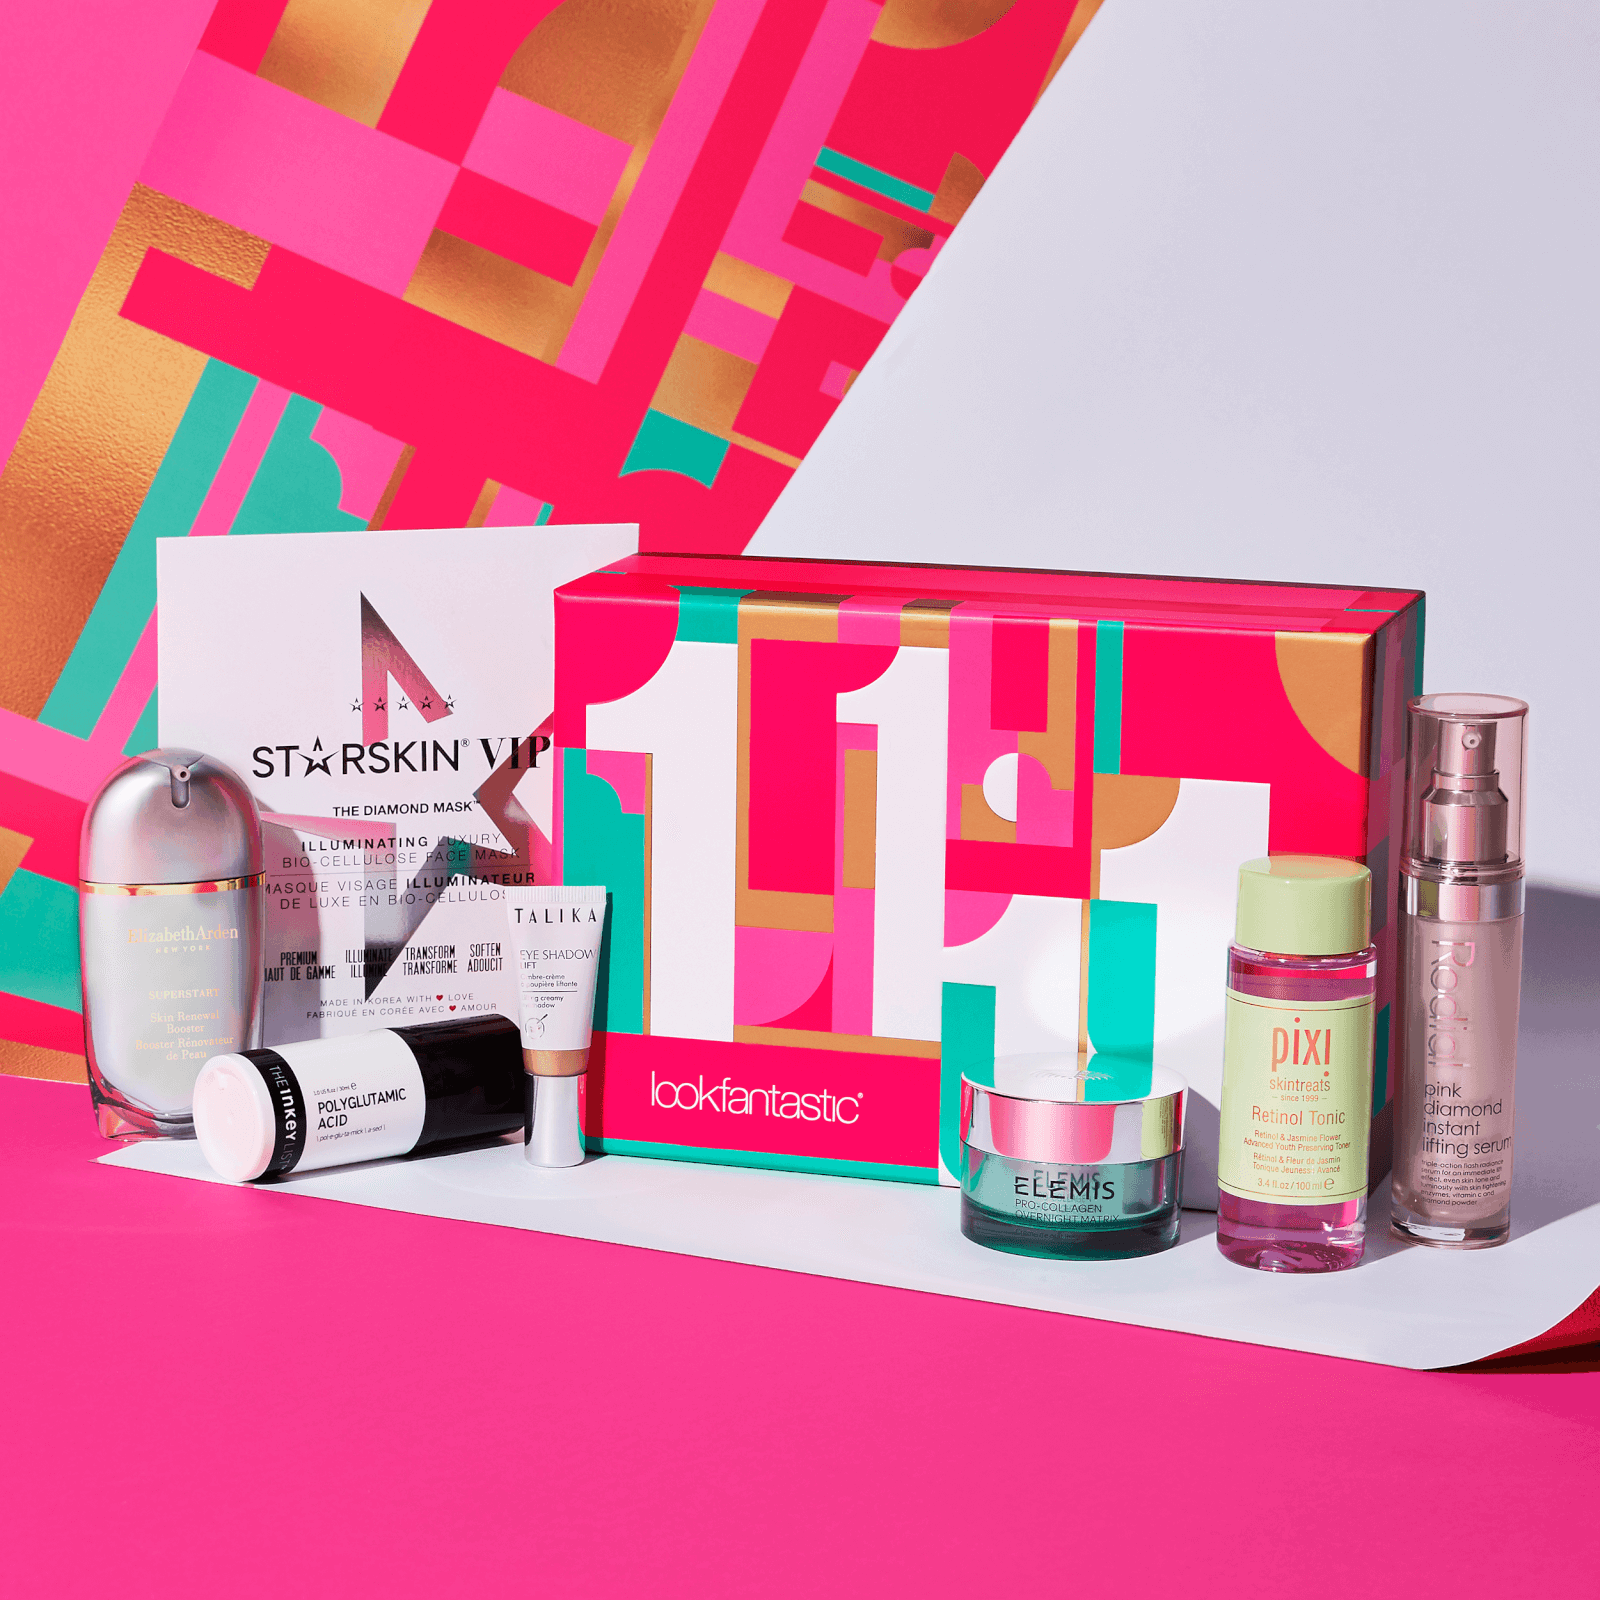 Look Fantastic Singles Day Limited Edition Beauty Box Available Now + Full Spoilers!